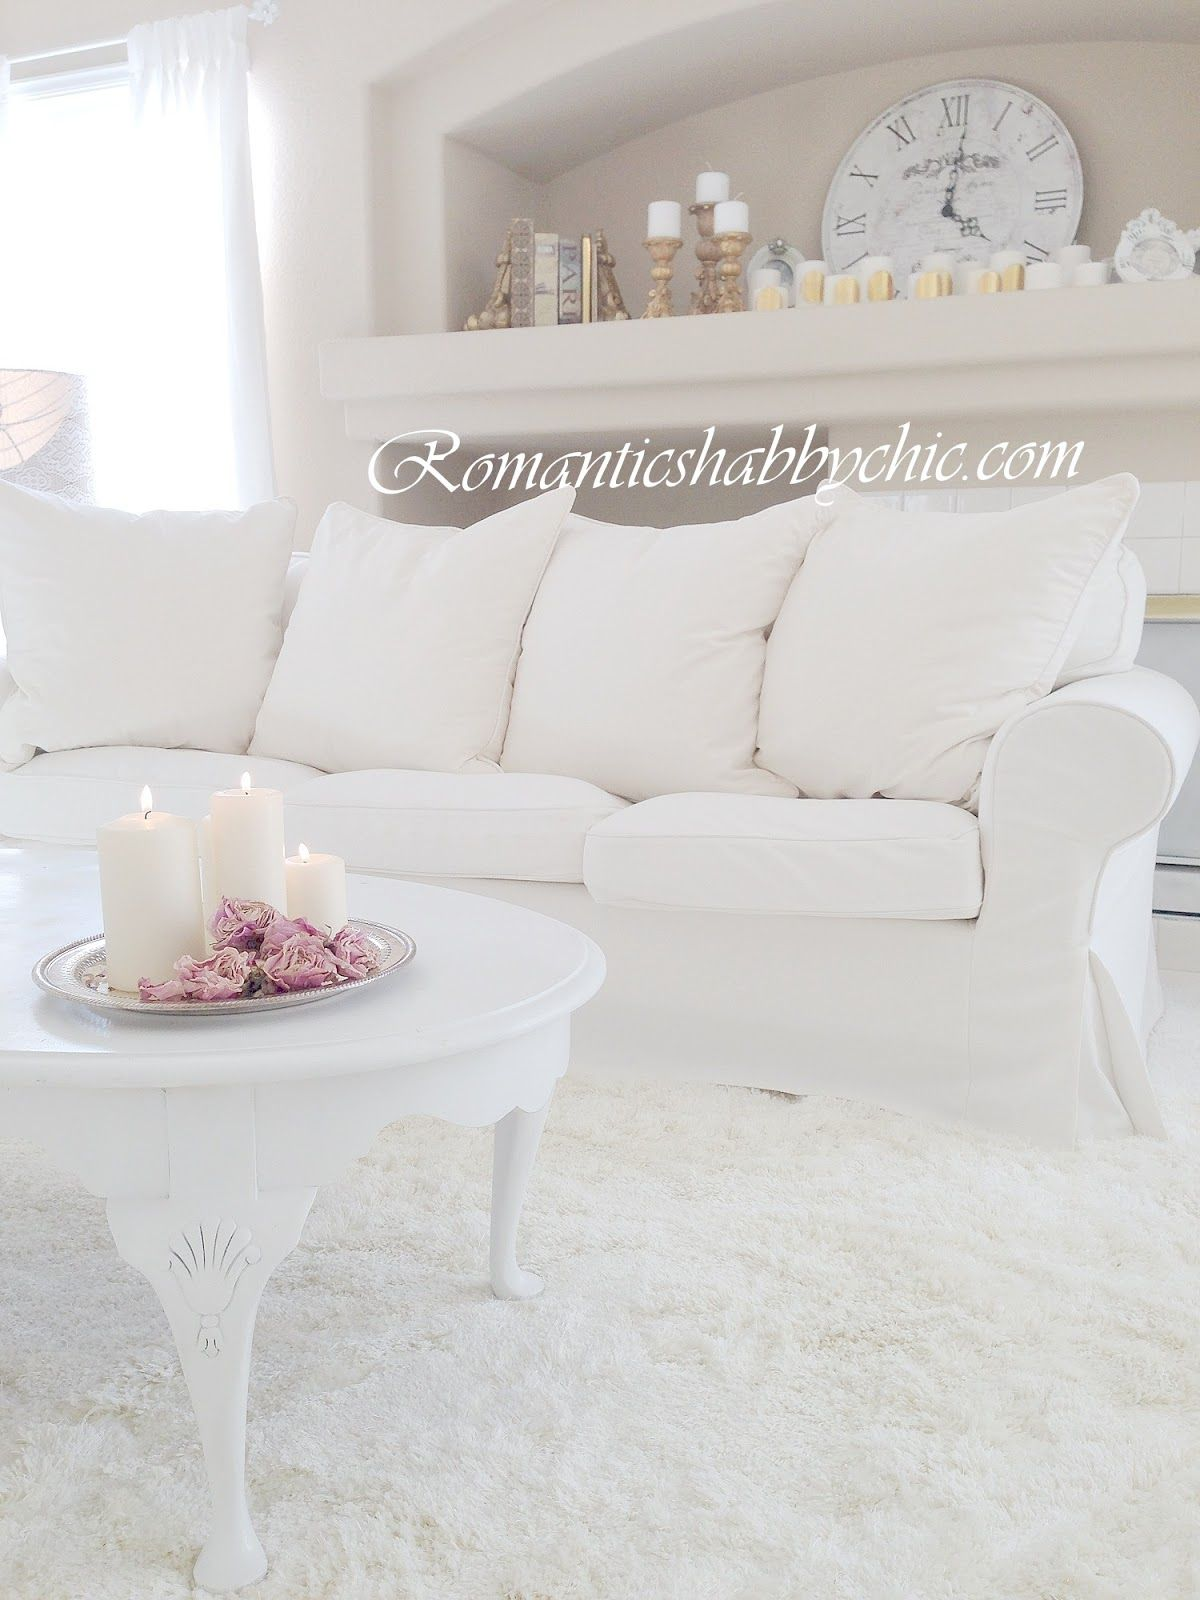 Teppiche Shabby Chic Romantikev Romantik White Andshabby The Beauty Of